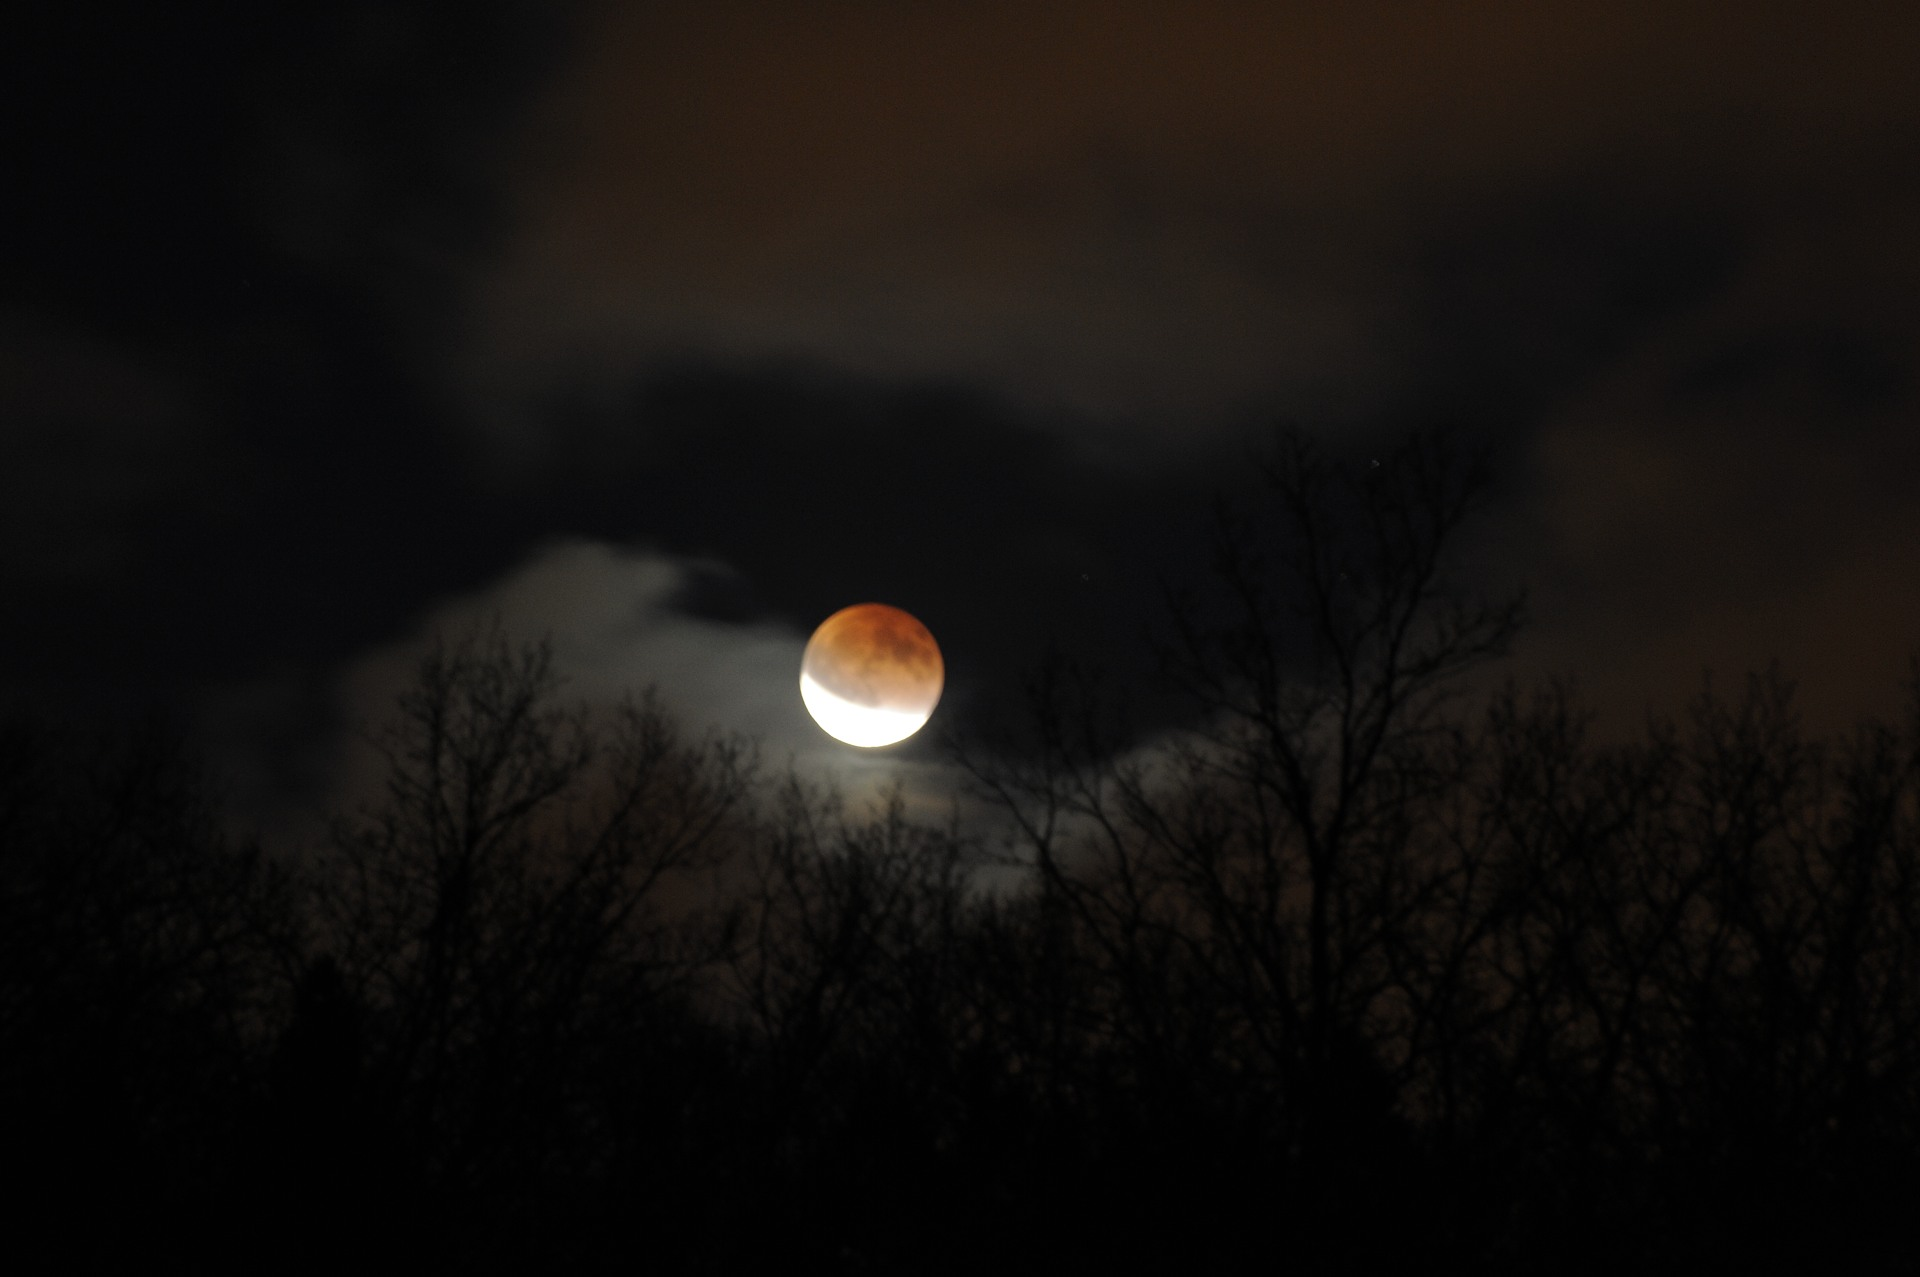 lunar eclipse 2011-12-10 (photo: magnus norden)